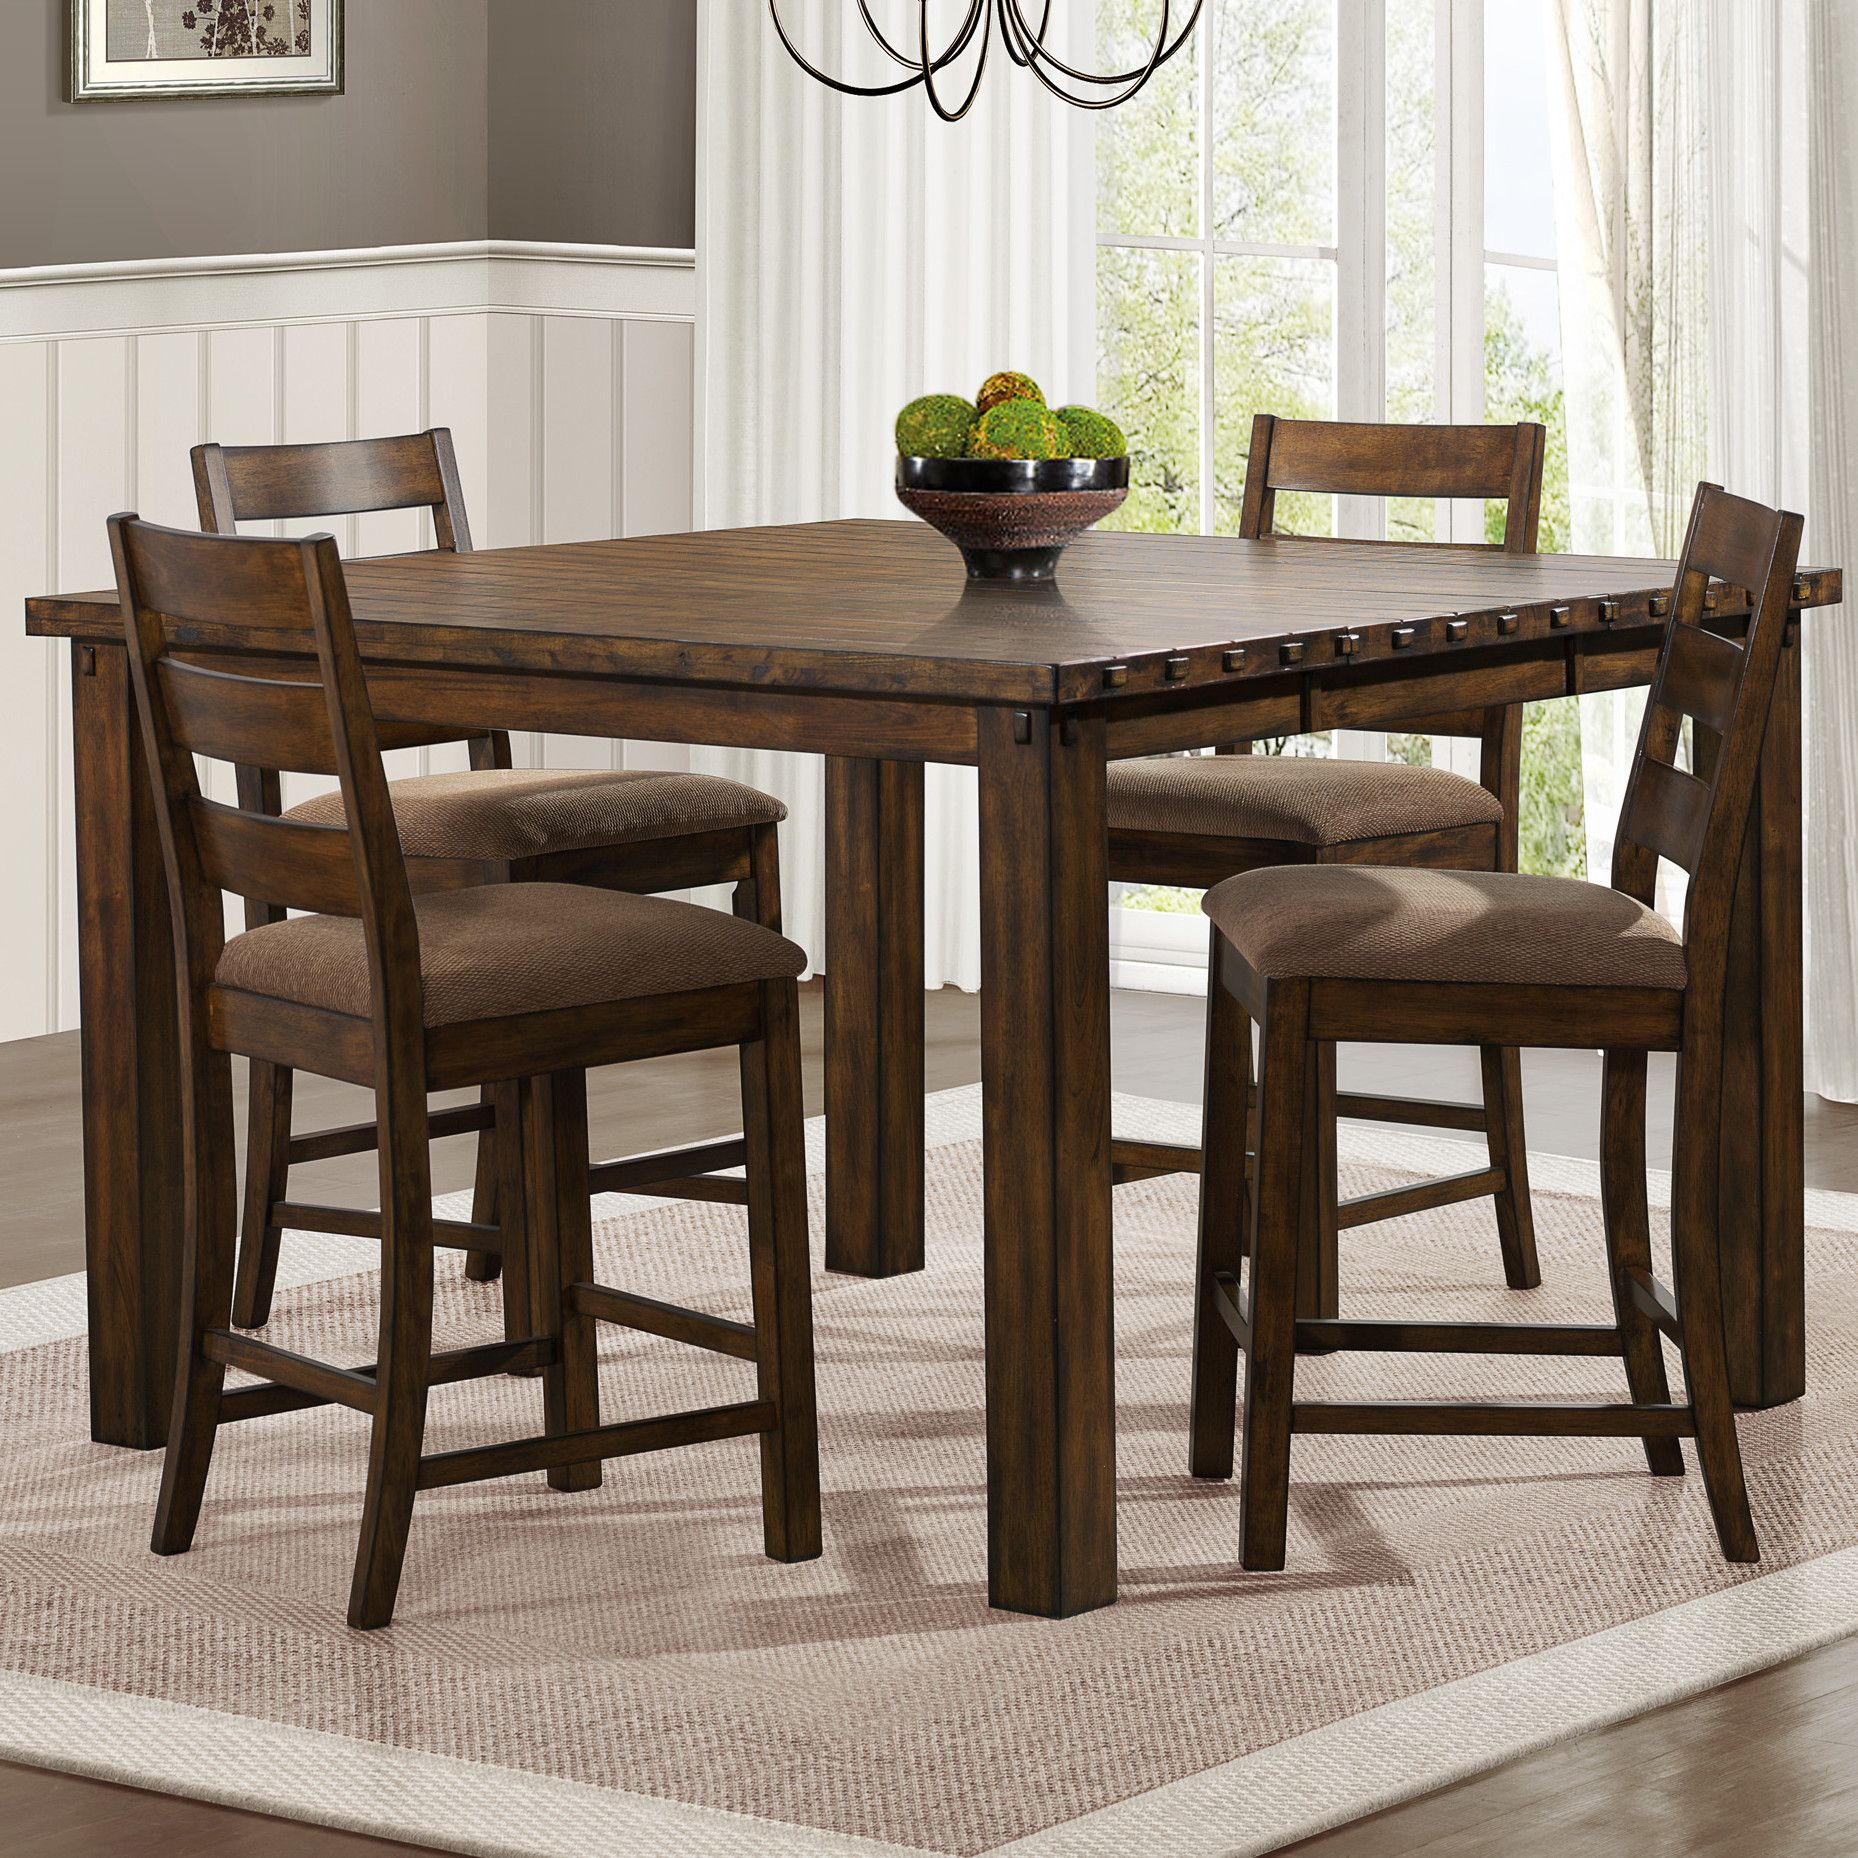 Ronan Counter Height Extendable Dining Table Dining Table In Kitchen Counter Height Dining Table Counter Height Dining Sets